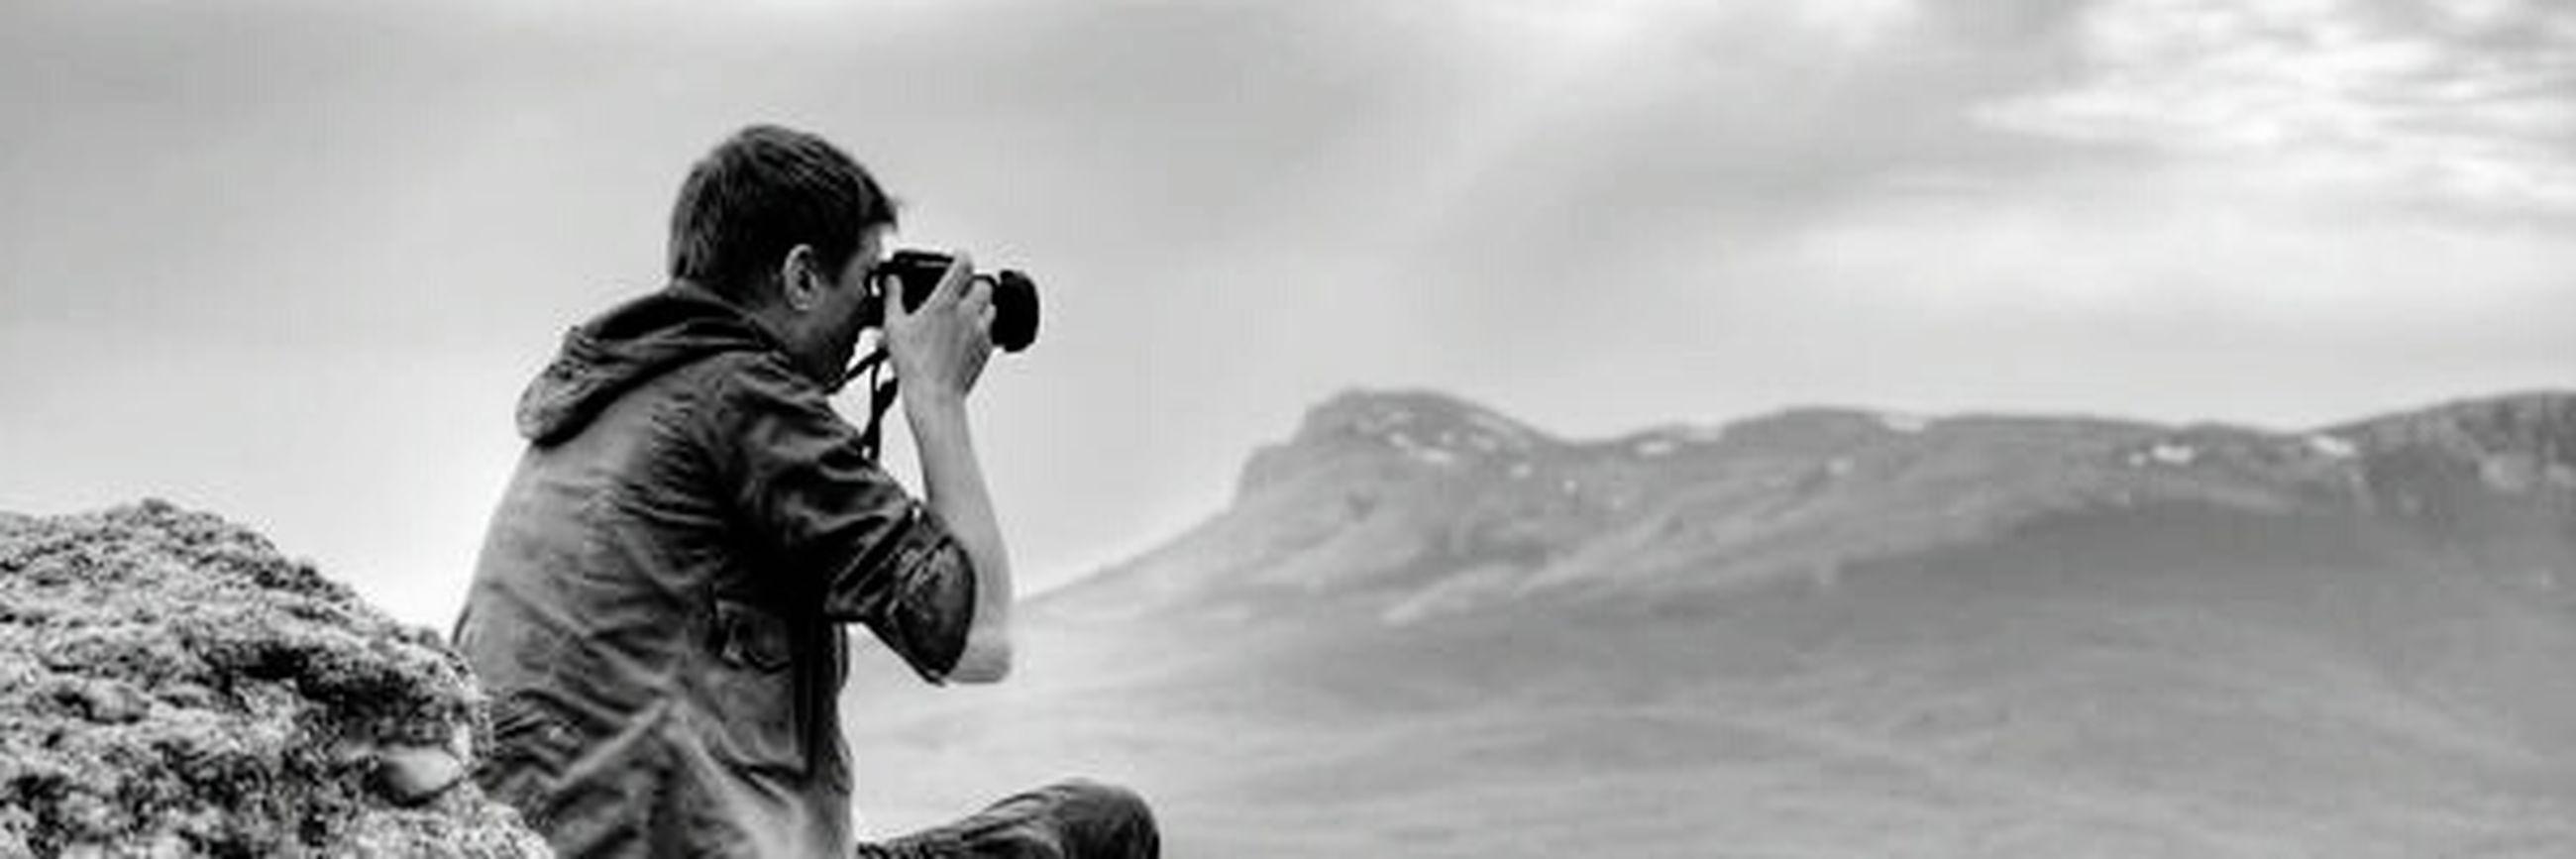 mountain, leisure activity, lifestyles, warm clothing, mountain range, three quarter length, focus on foreground, hobbies, enjoyment, holding, beauty in nature, casual clothing, non-urban scene, remote, nature, scenics, tranquility, majestic, sky, outdoors, tranquil scene